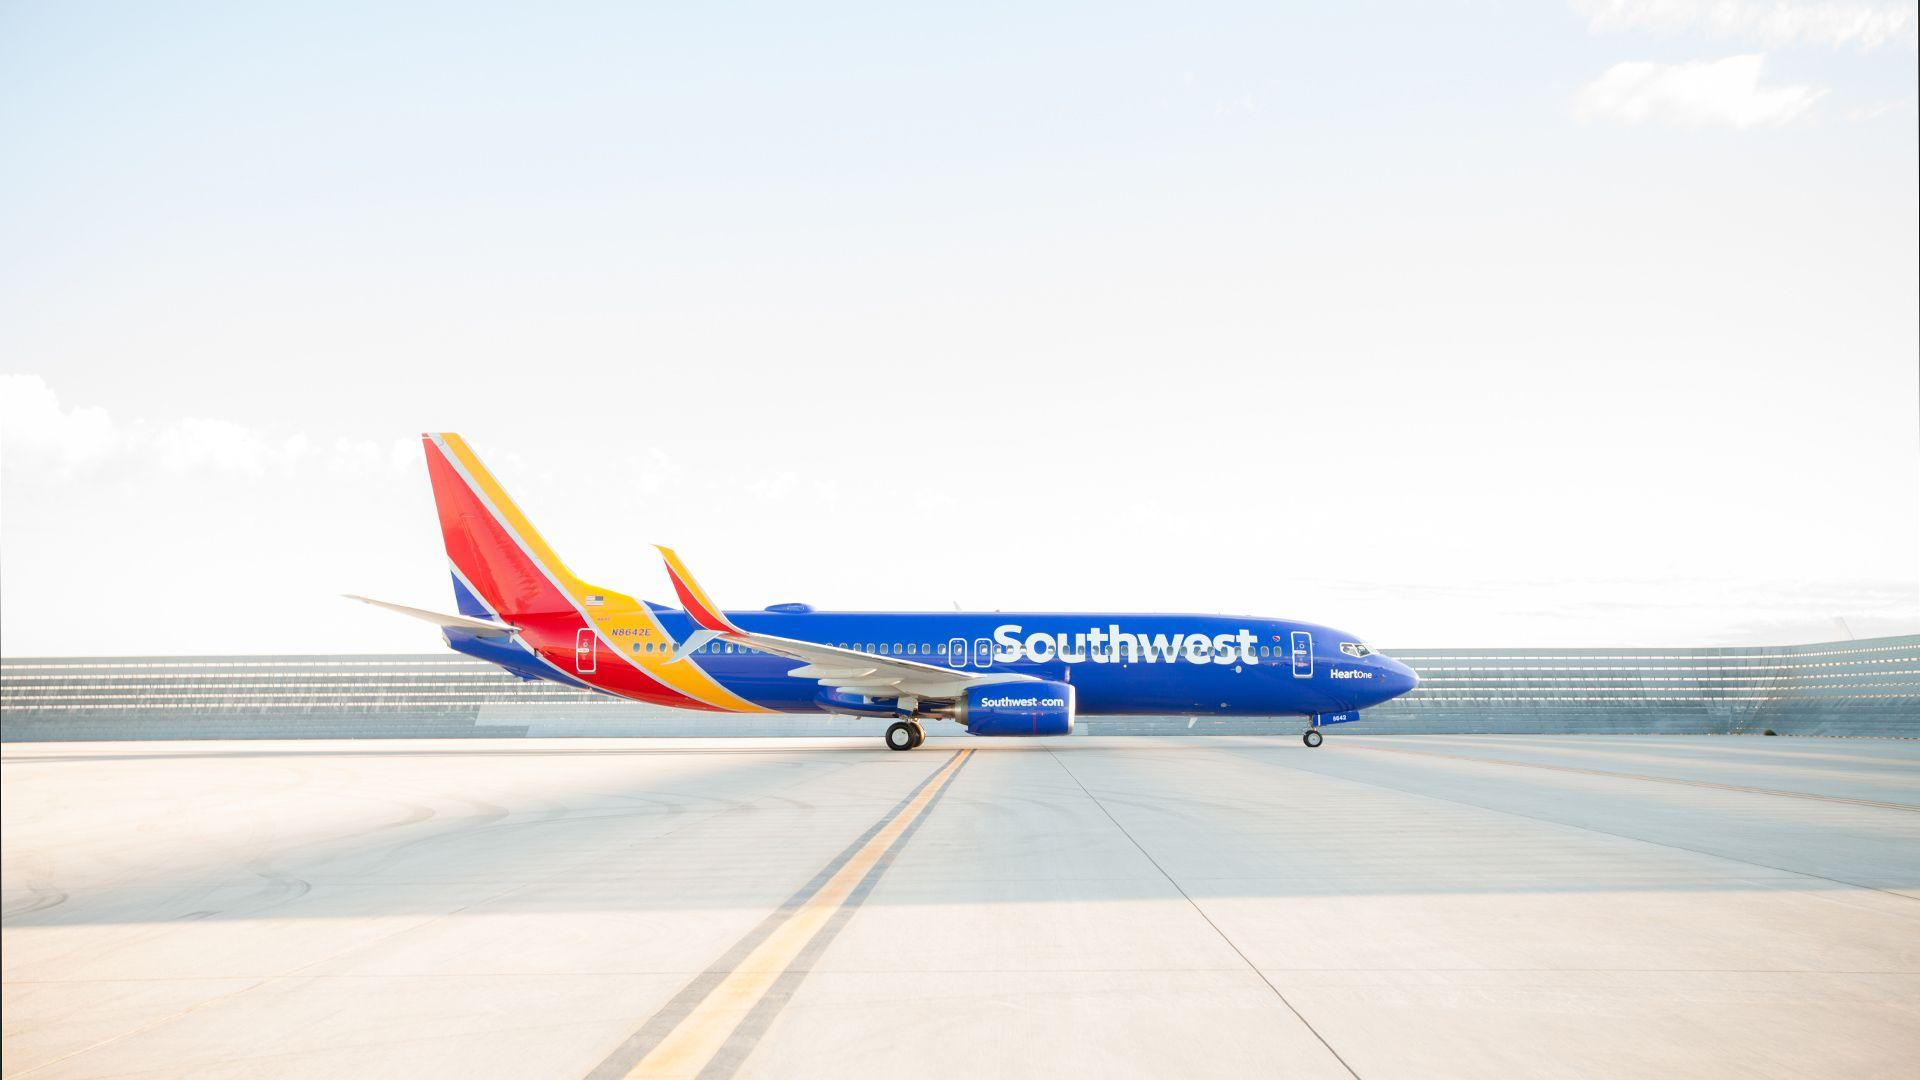 Southwest airlines sends hottest fares directly to customers.